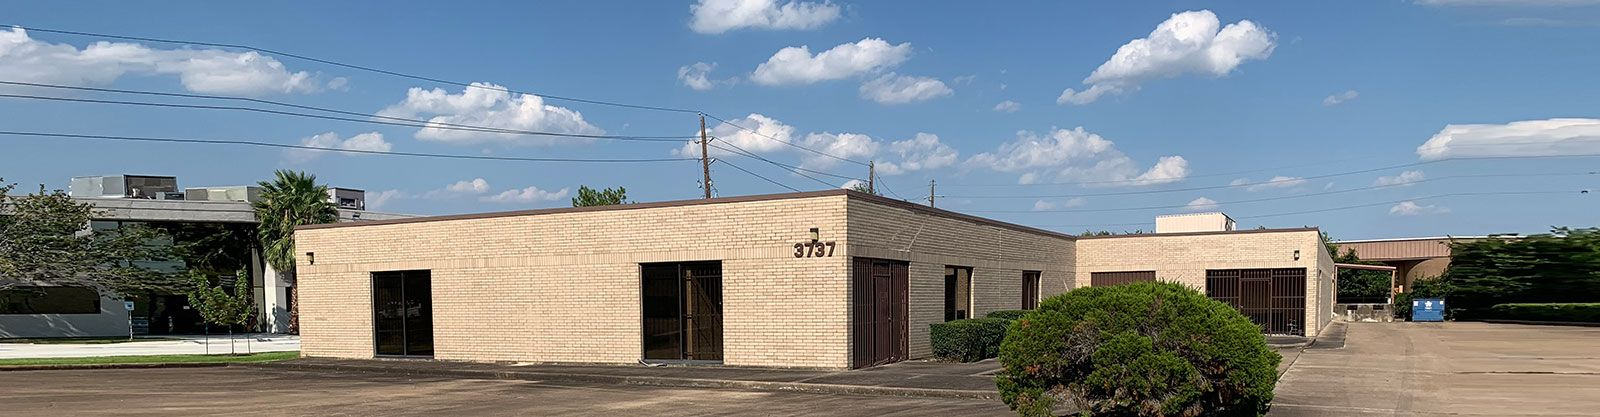 Forms and Printing Service, Inc. Offices and Plant